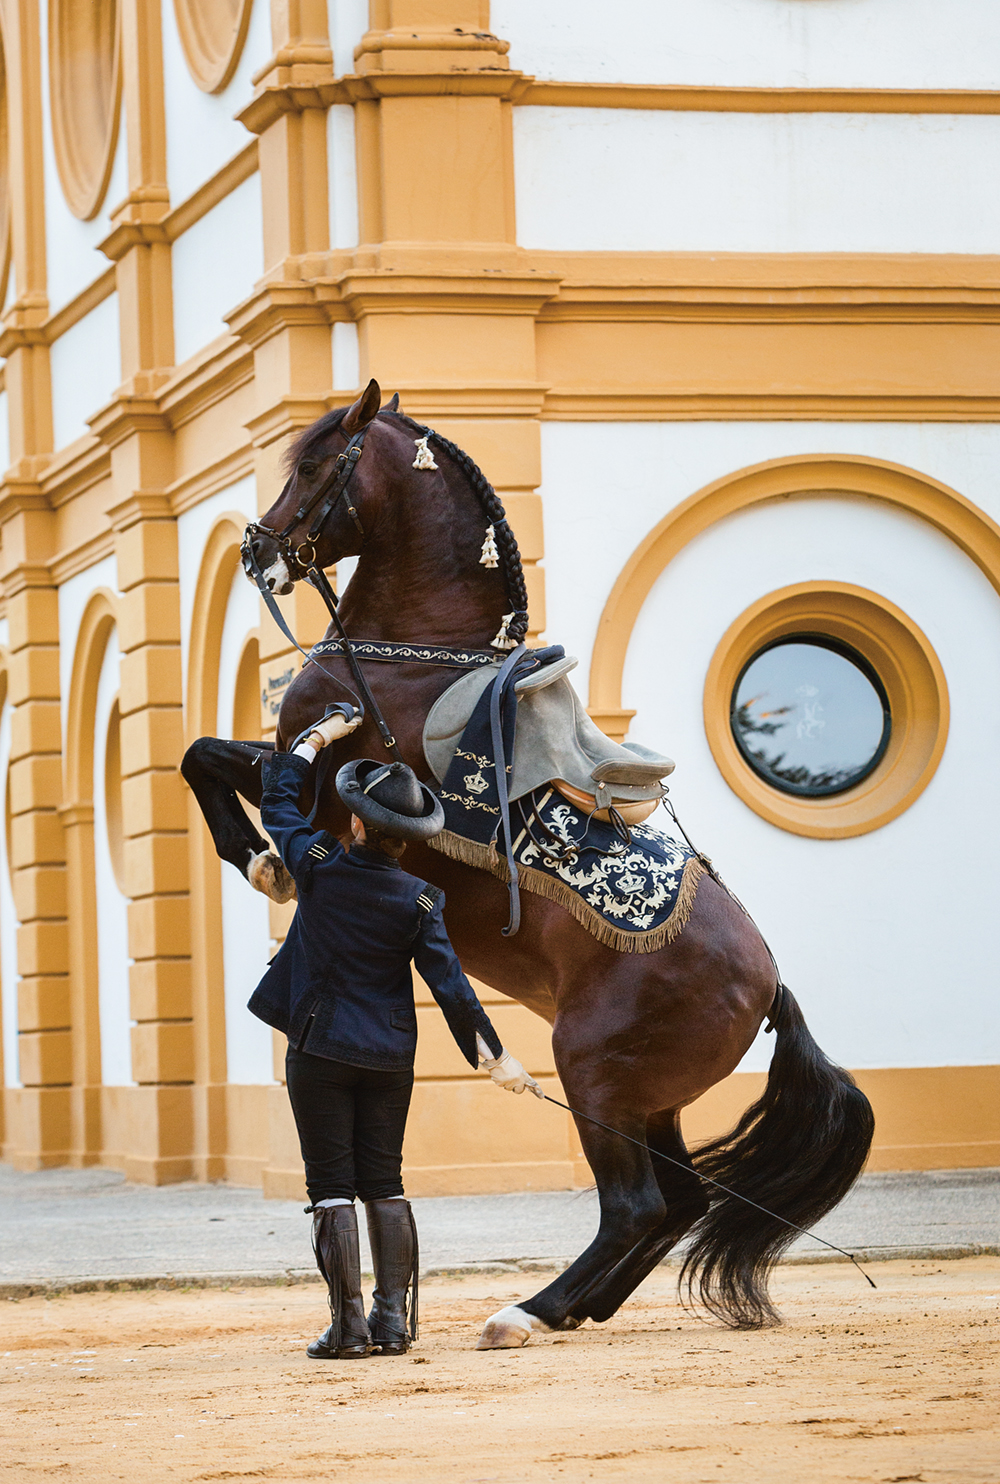 ROYAL ANDALUSIAN SCHOOL OF EQUESTRIAN ART, Jerez, Spain  Photo © Fundación Real Escuela Andaluza Del Arte Ecuestre